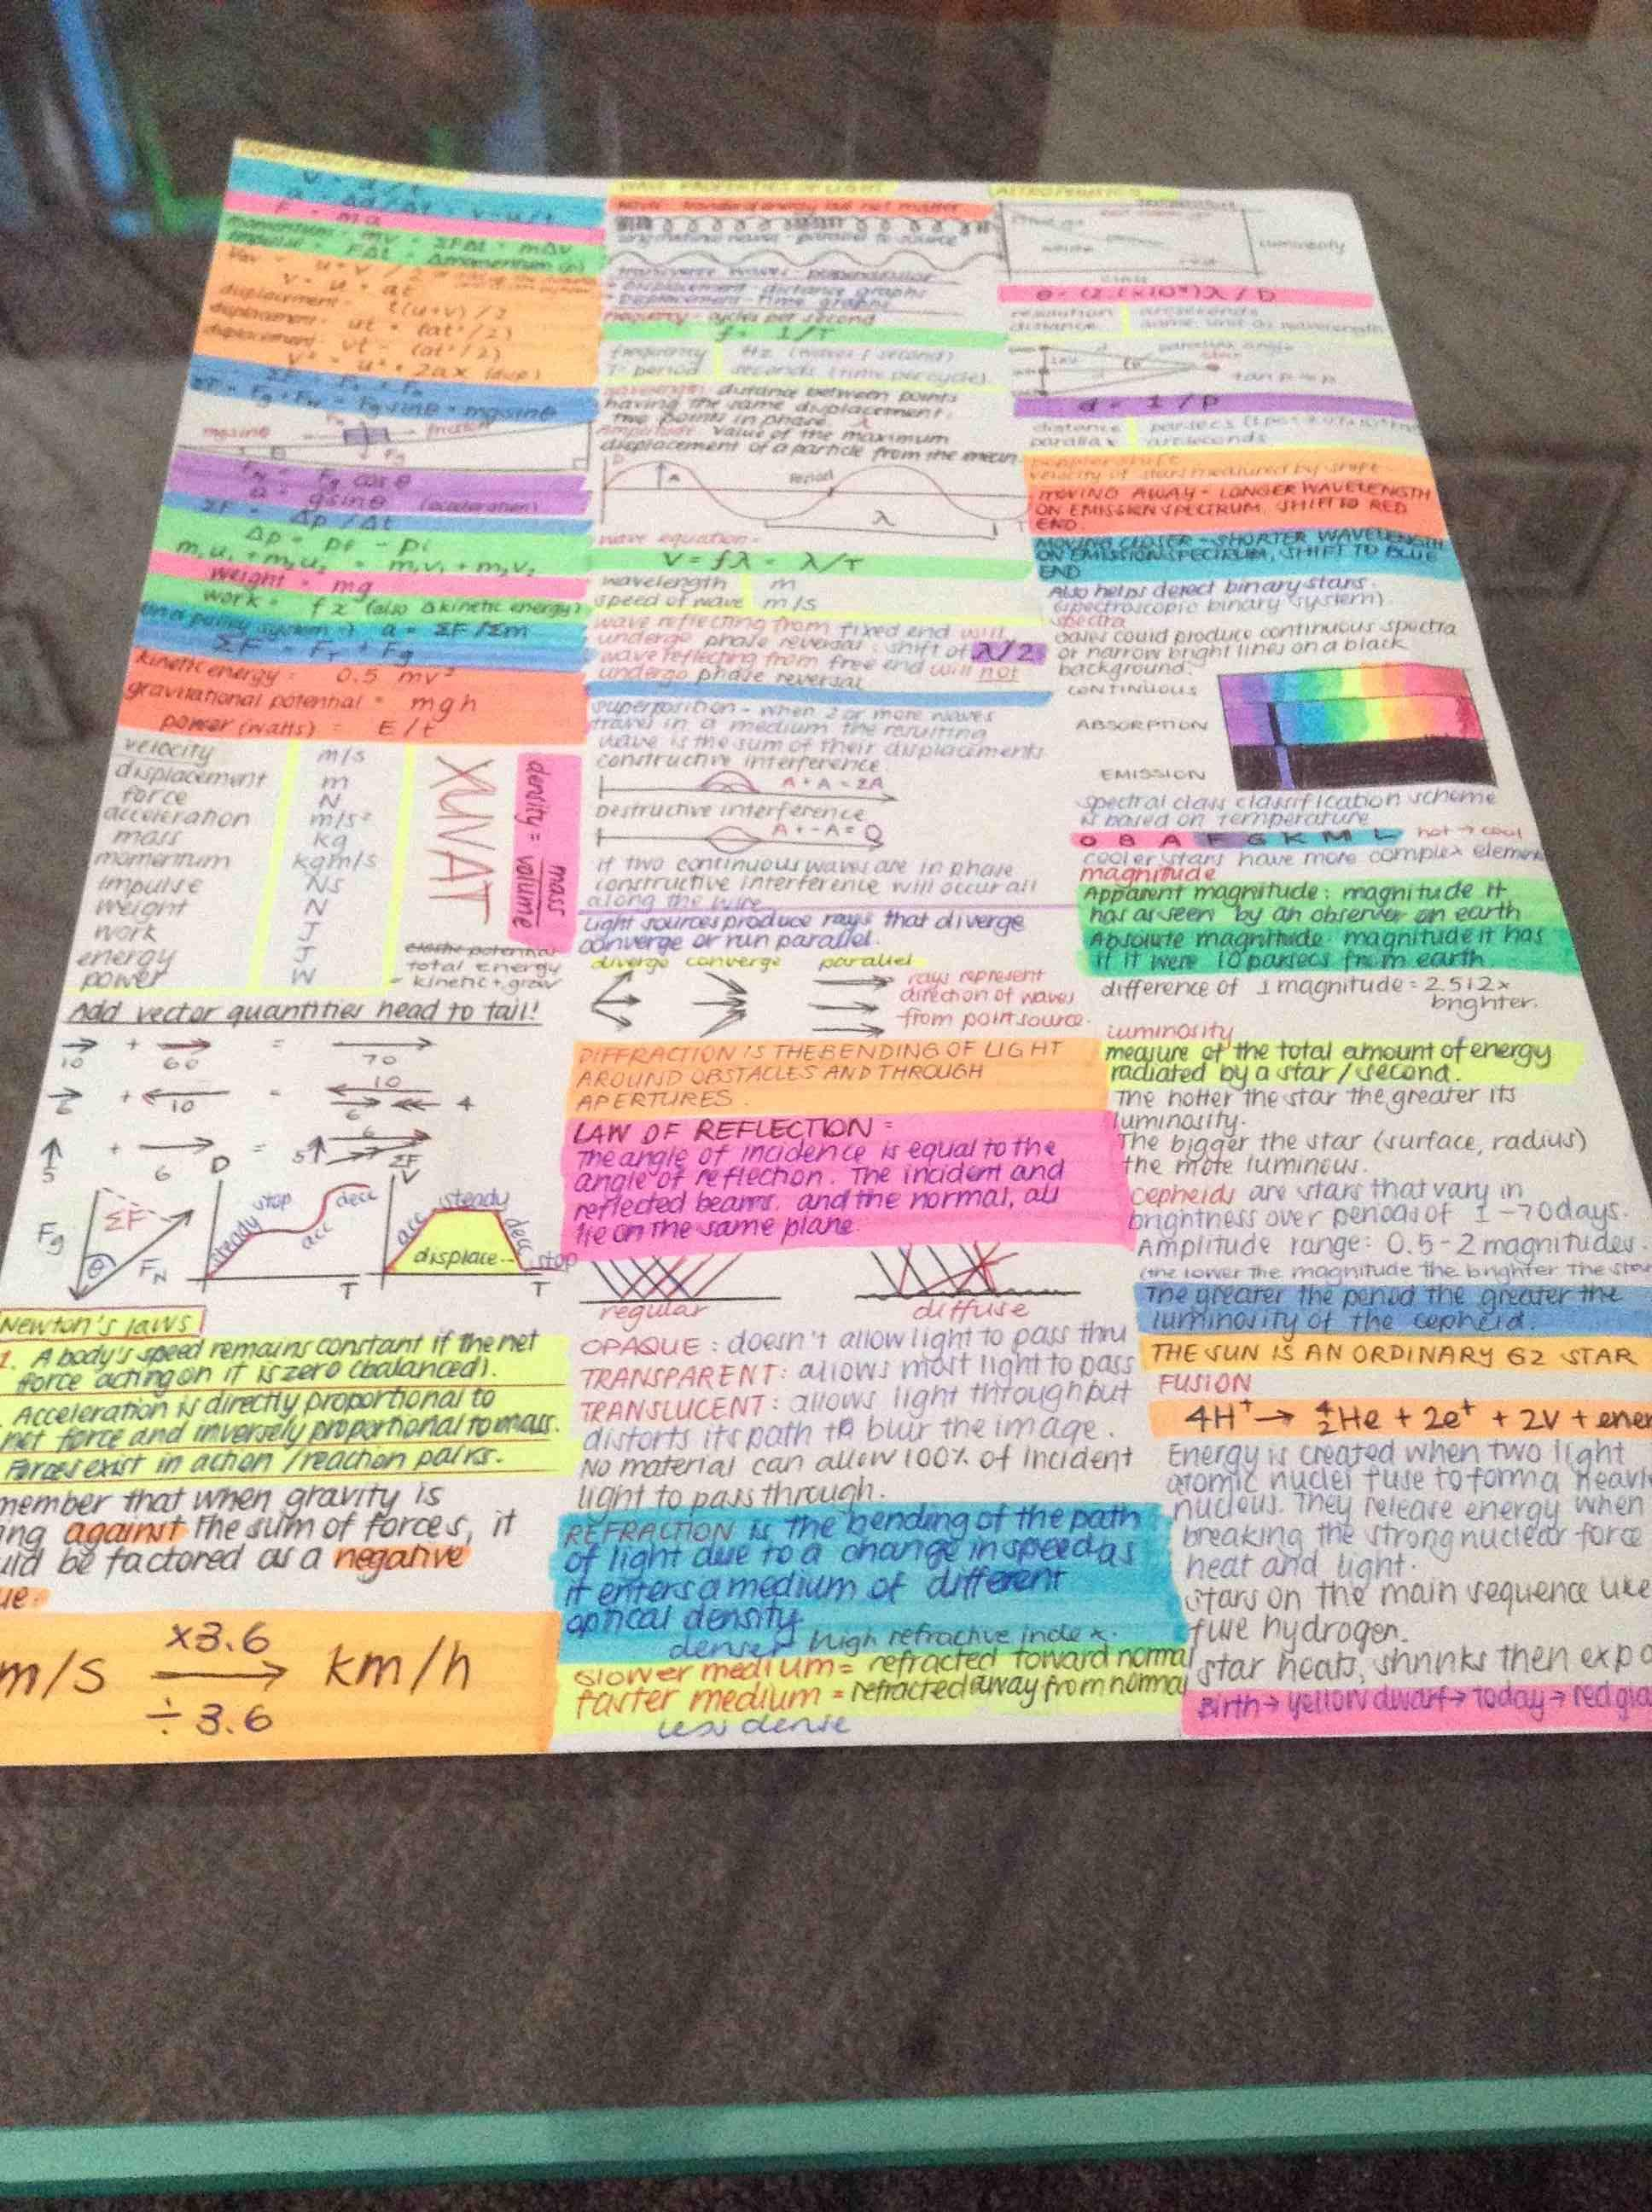 Note taking made more accessible & fun!